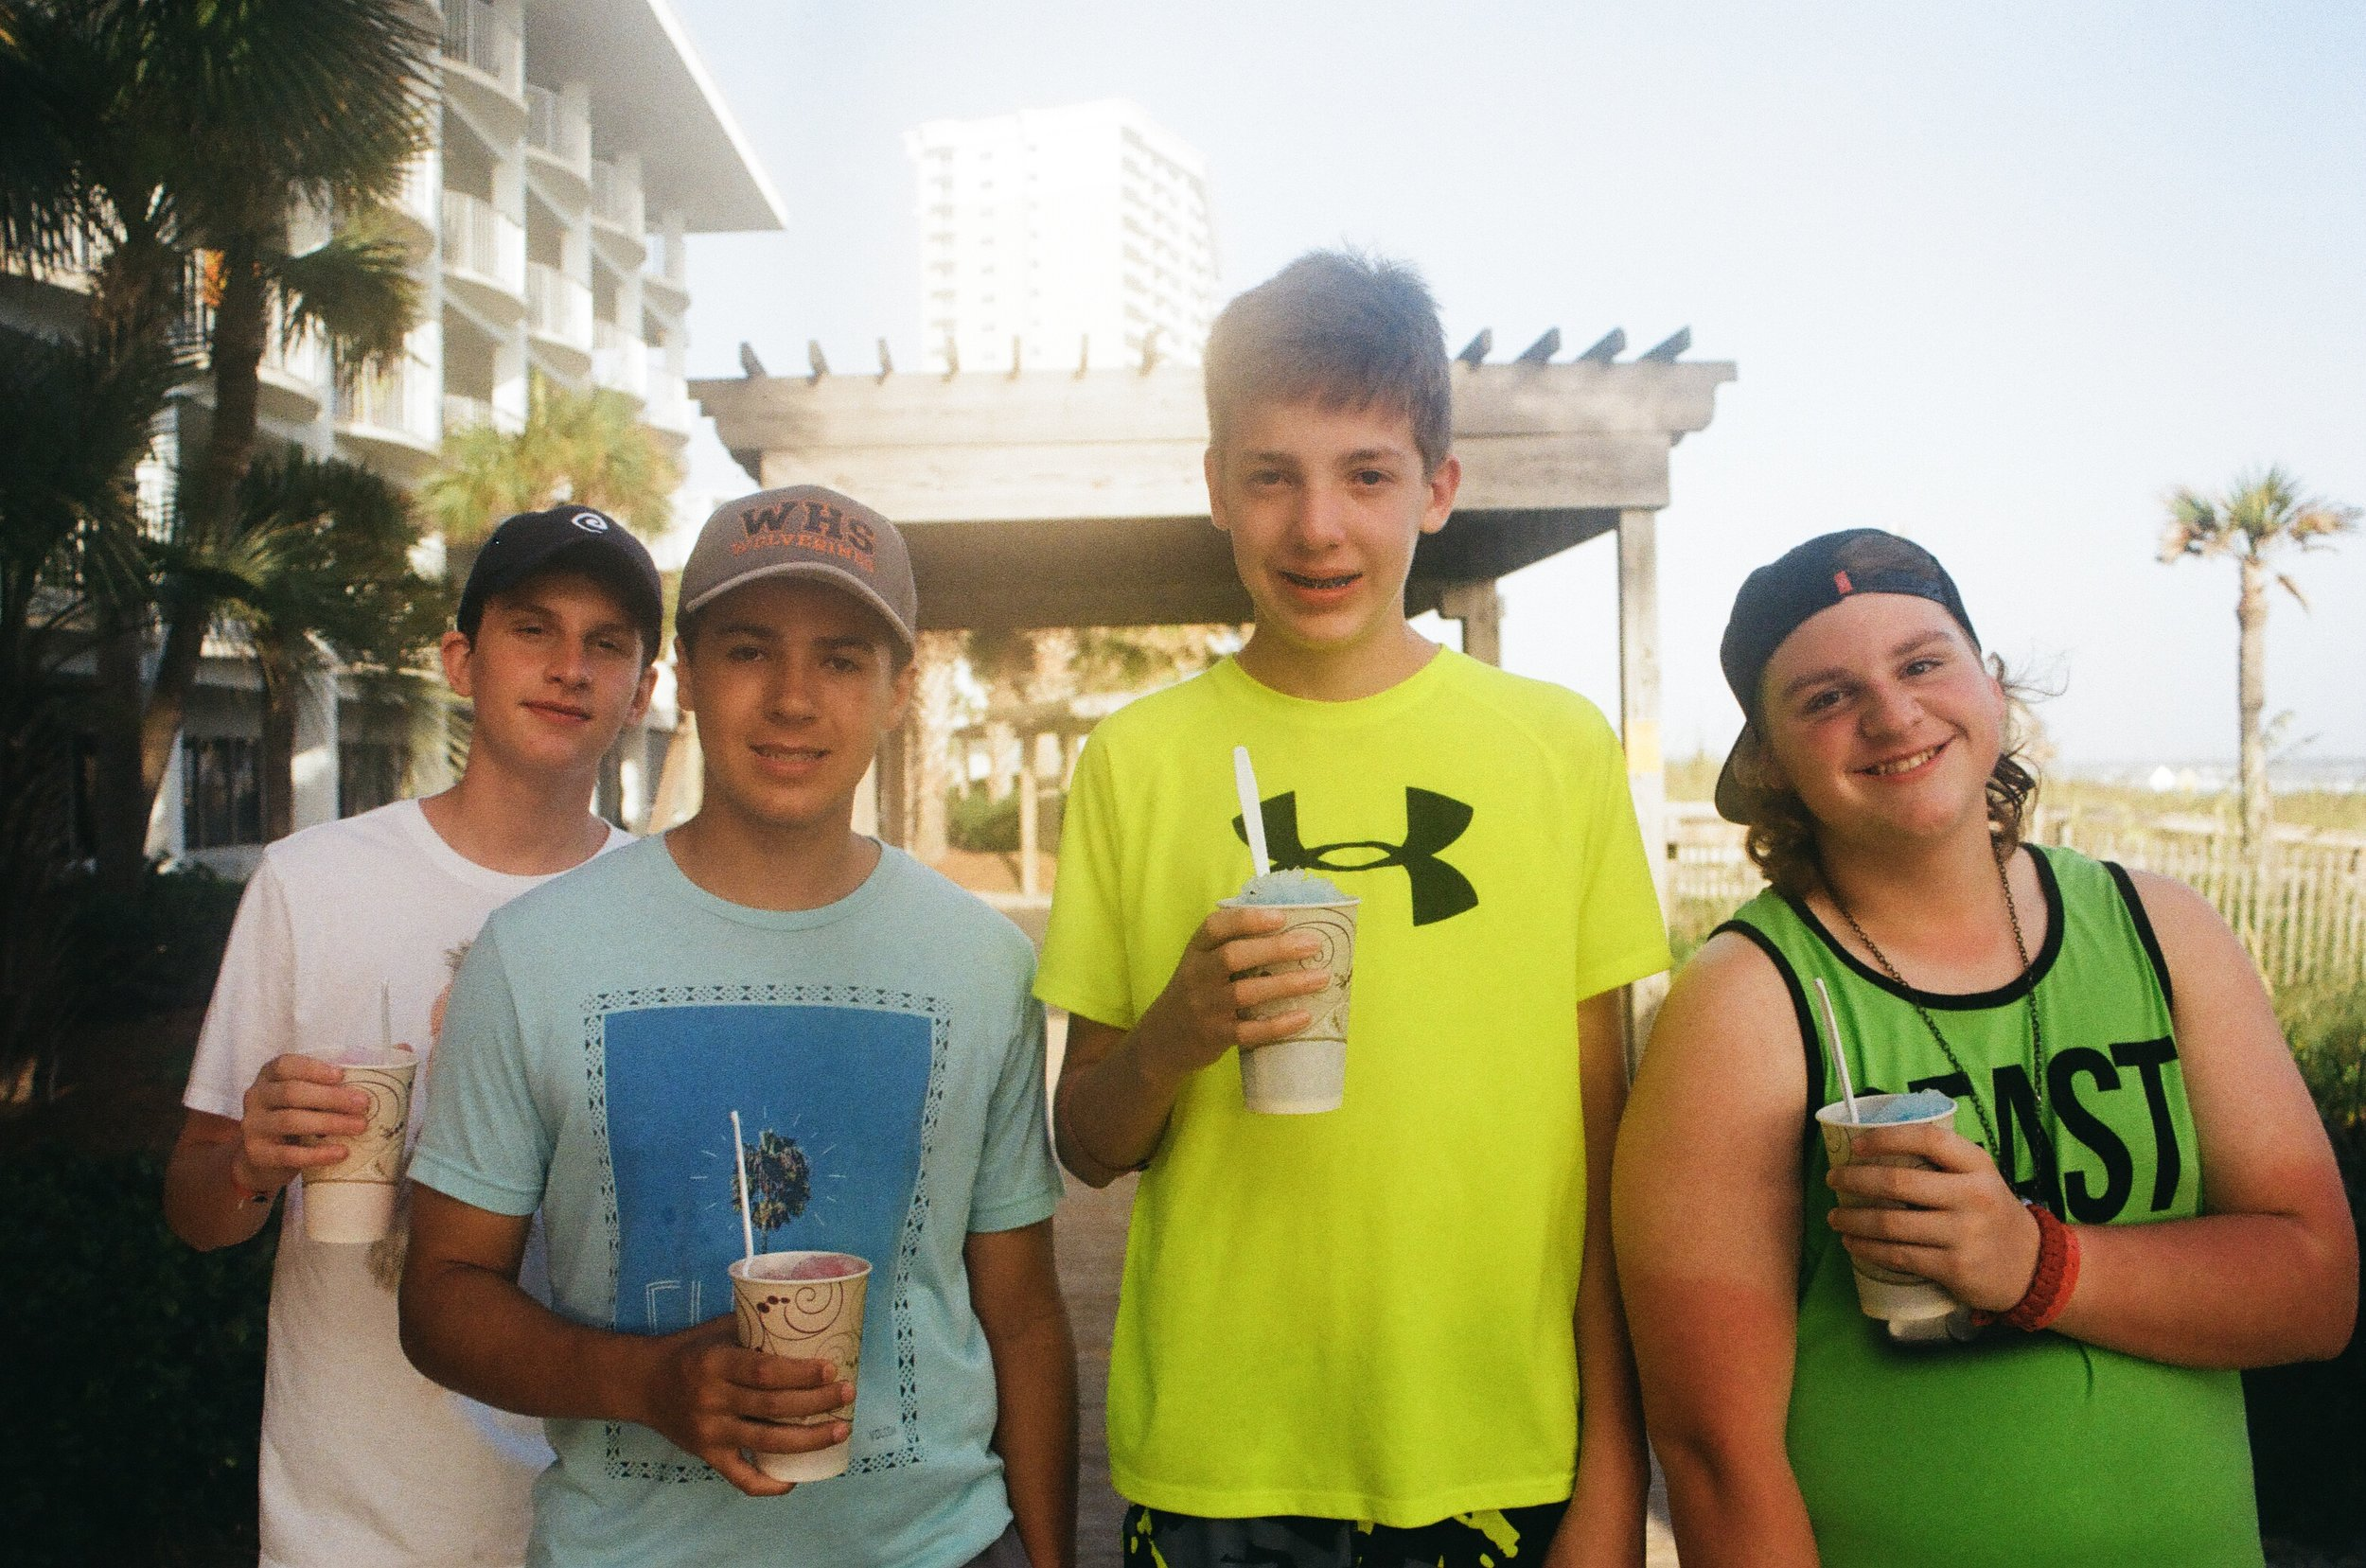 Pictured (left to right): James, Ayden, Dalton, Reese (happy campers)